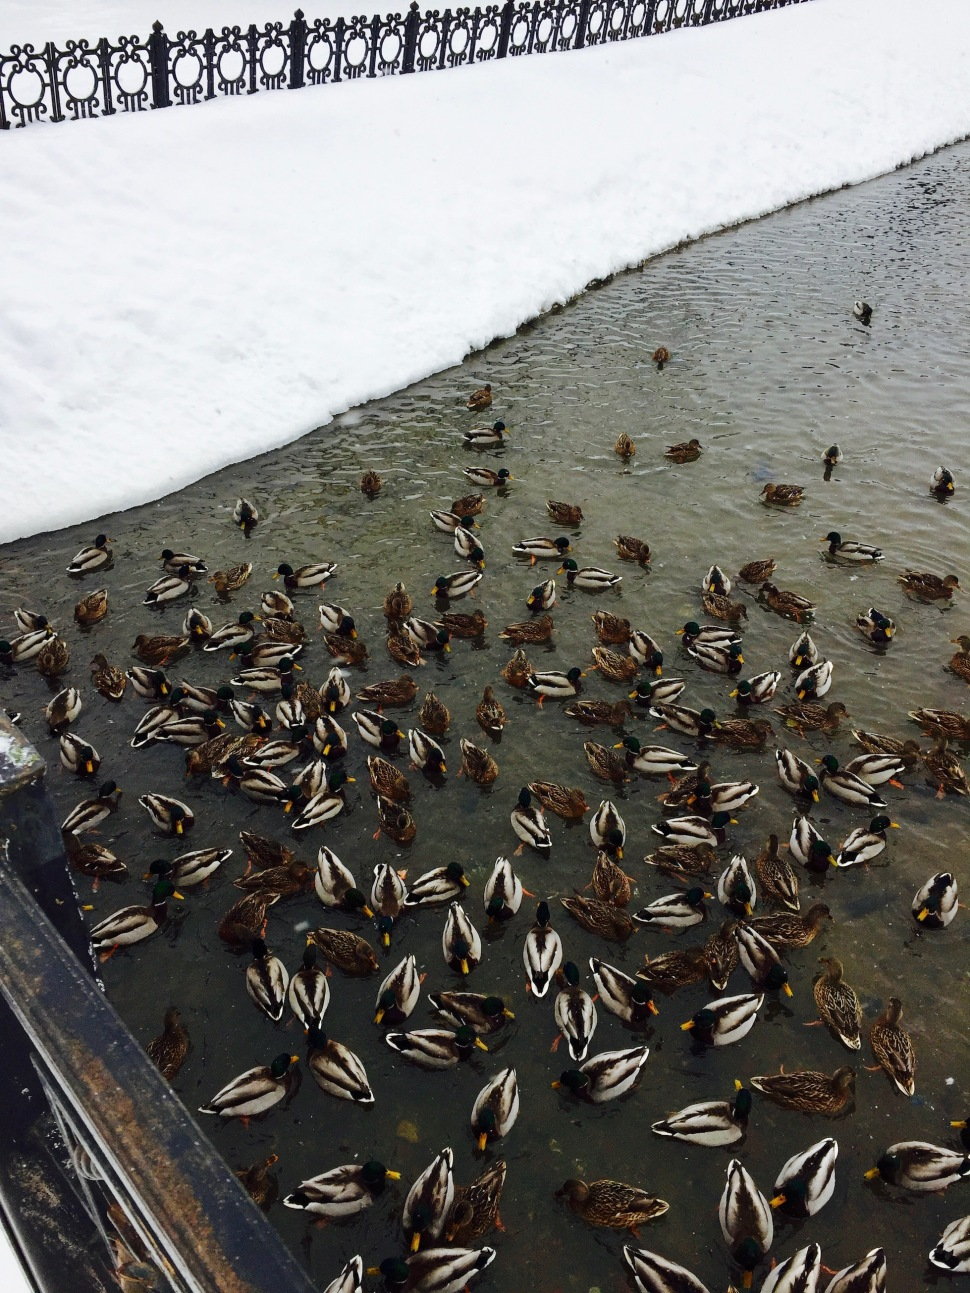 sergiev-posad_city-walk_ducks